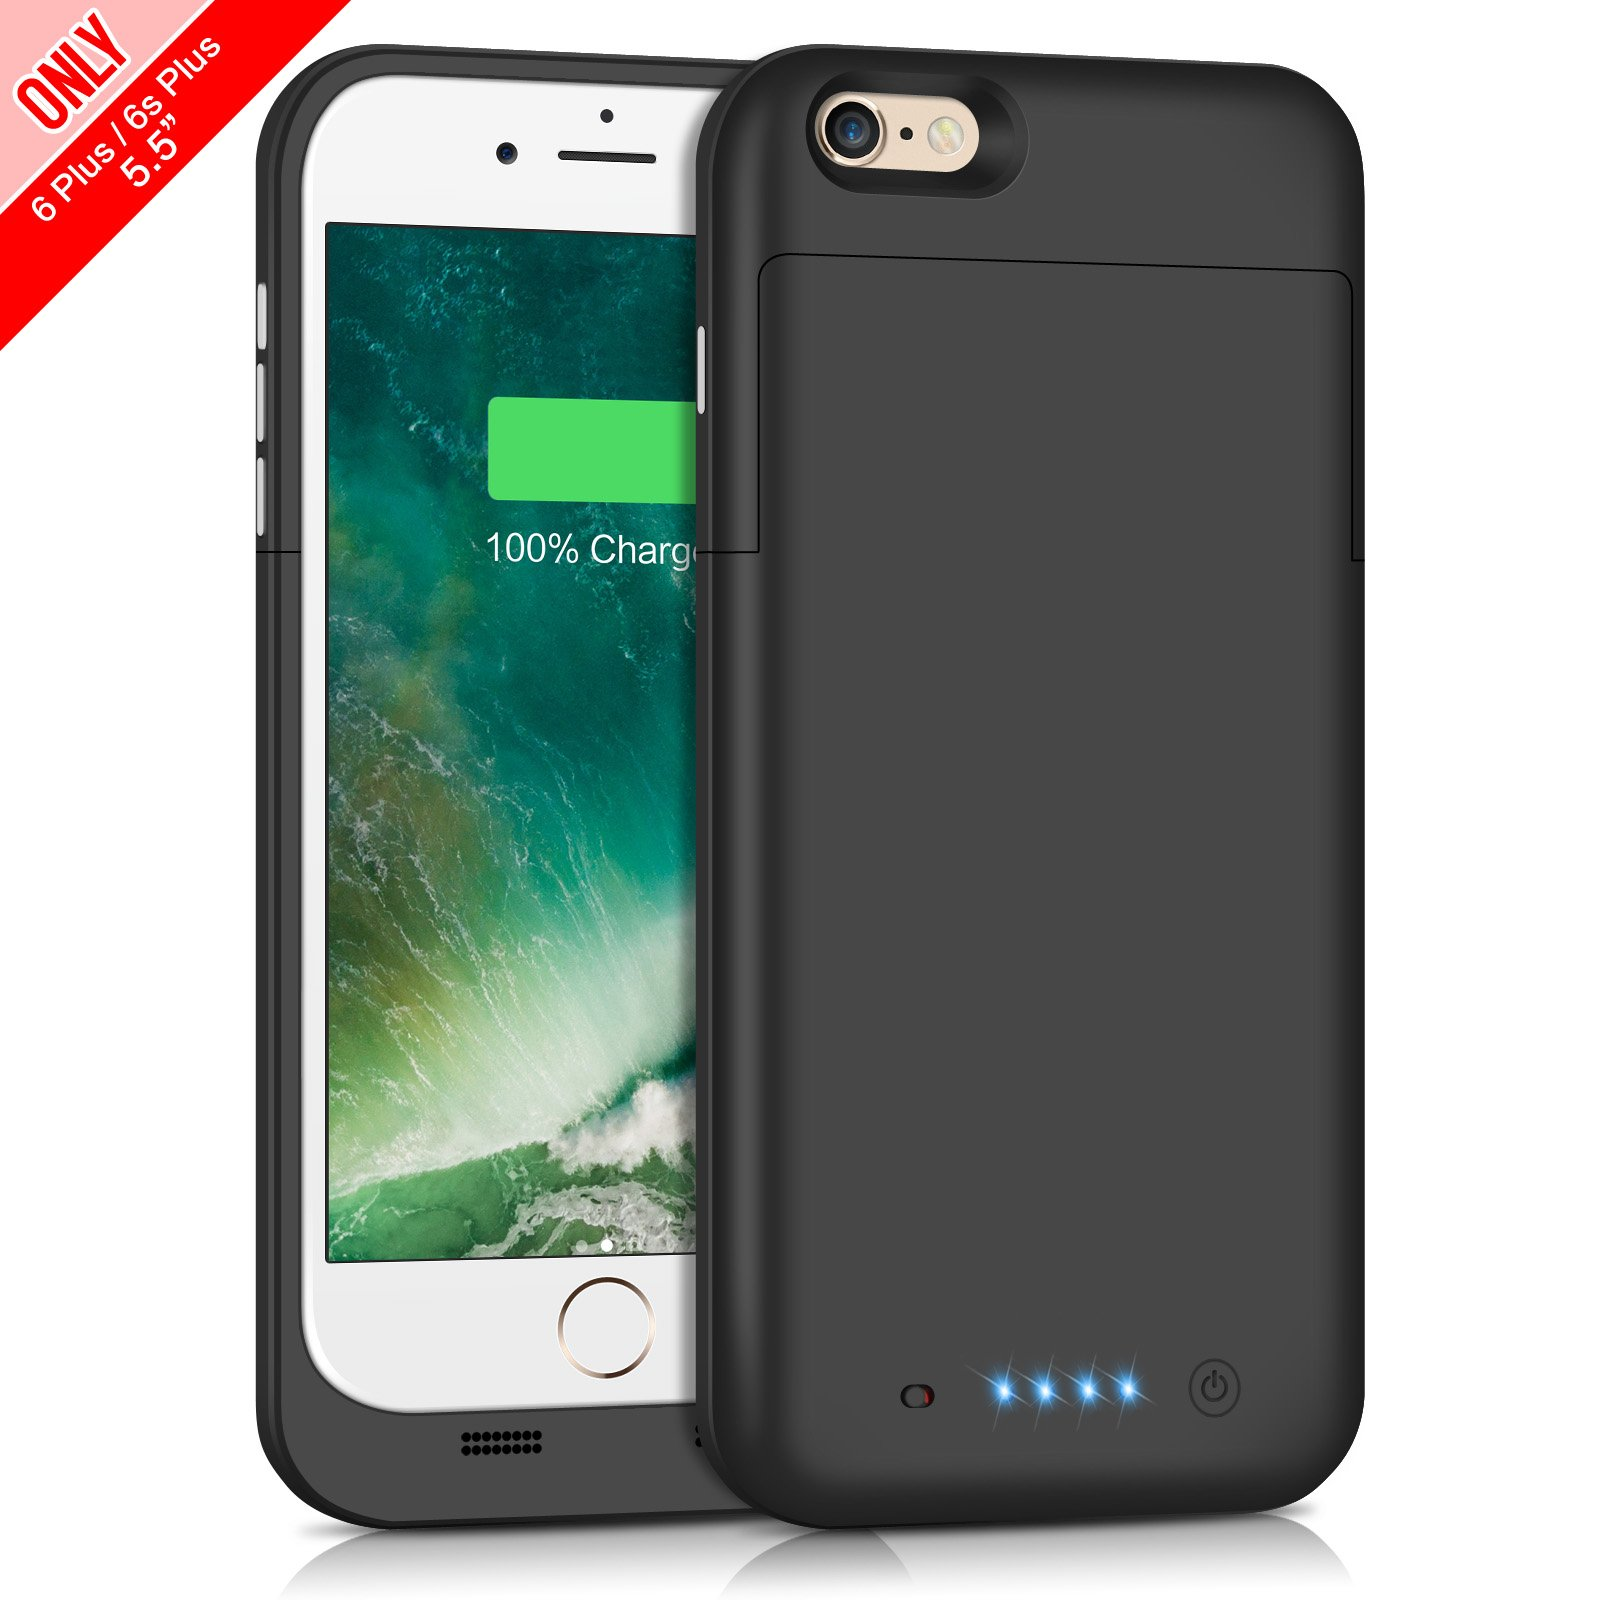 Gixvdcu iPhone 6S Plus / 6 Plus Battery Case [6800mAh], Portable Protective Charging Case iPhone 6Plus, 6S Plus Extended Backup Charger Ultra Slim - Black